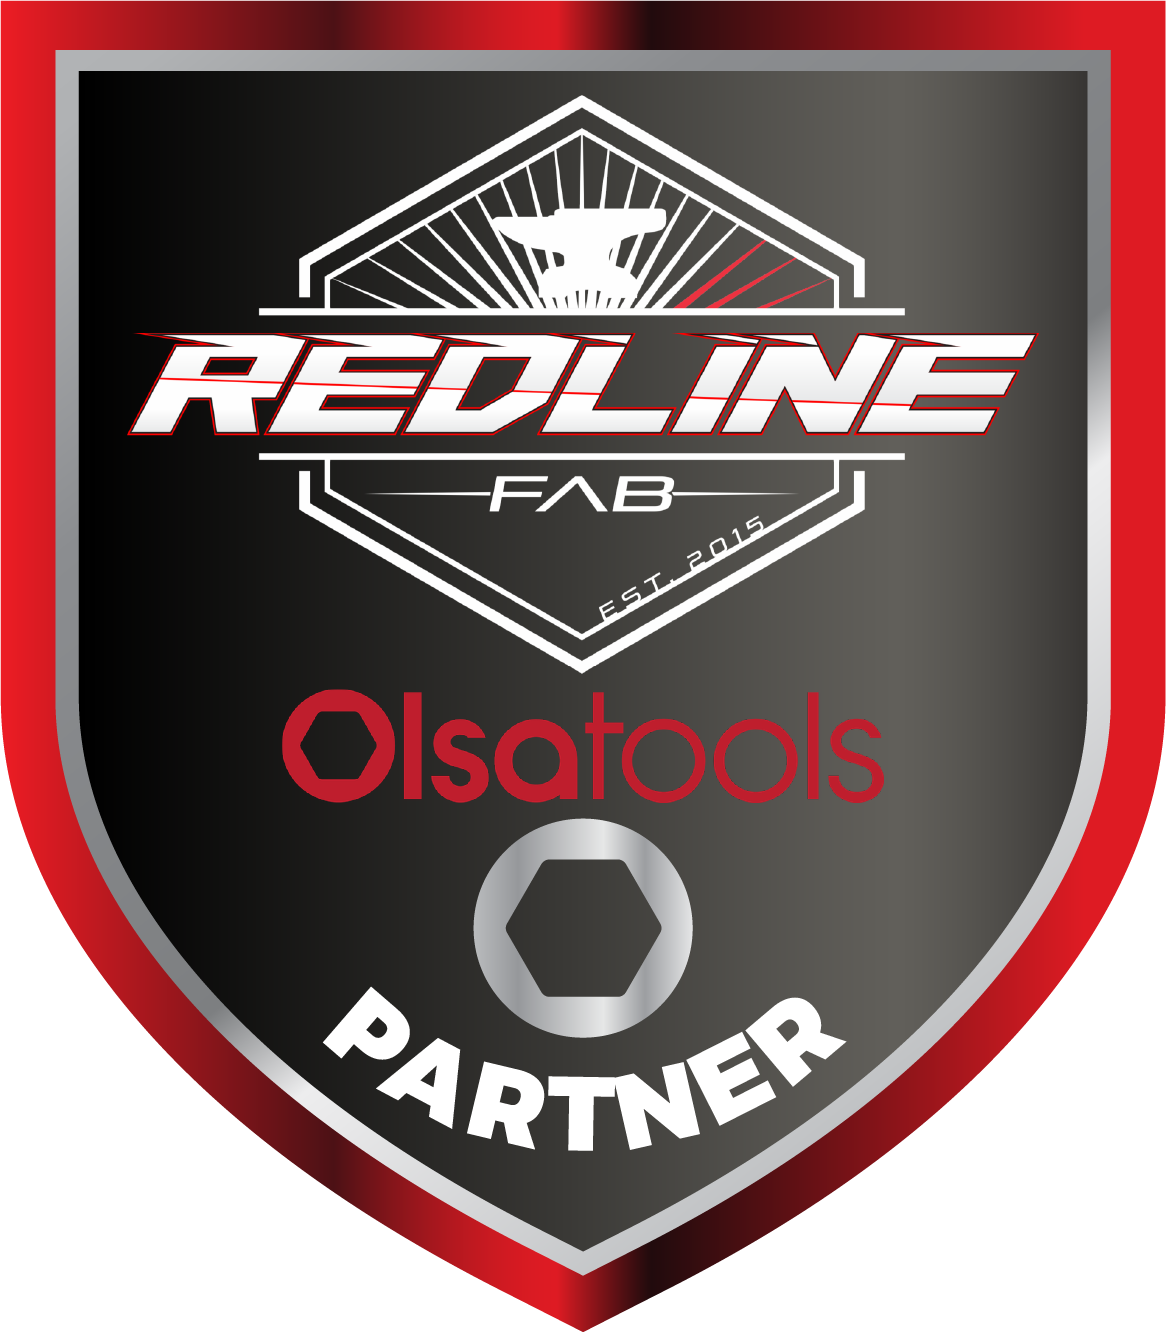 Redline Fabrication